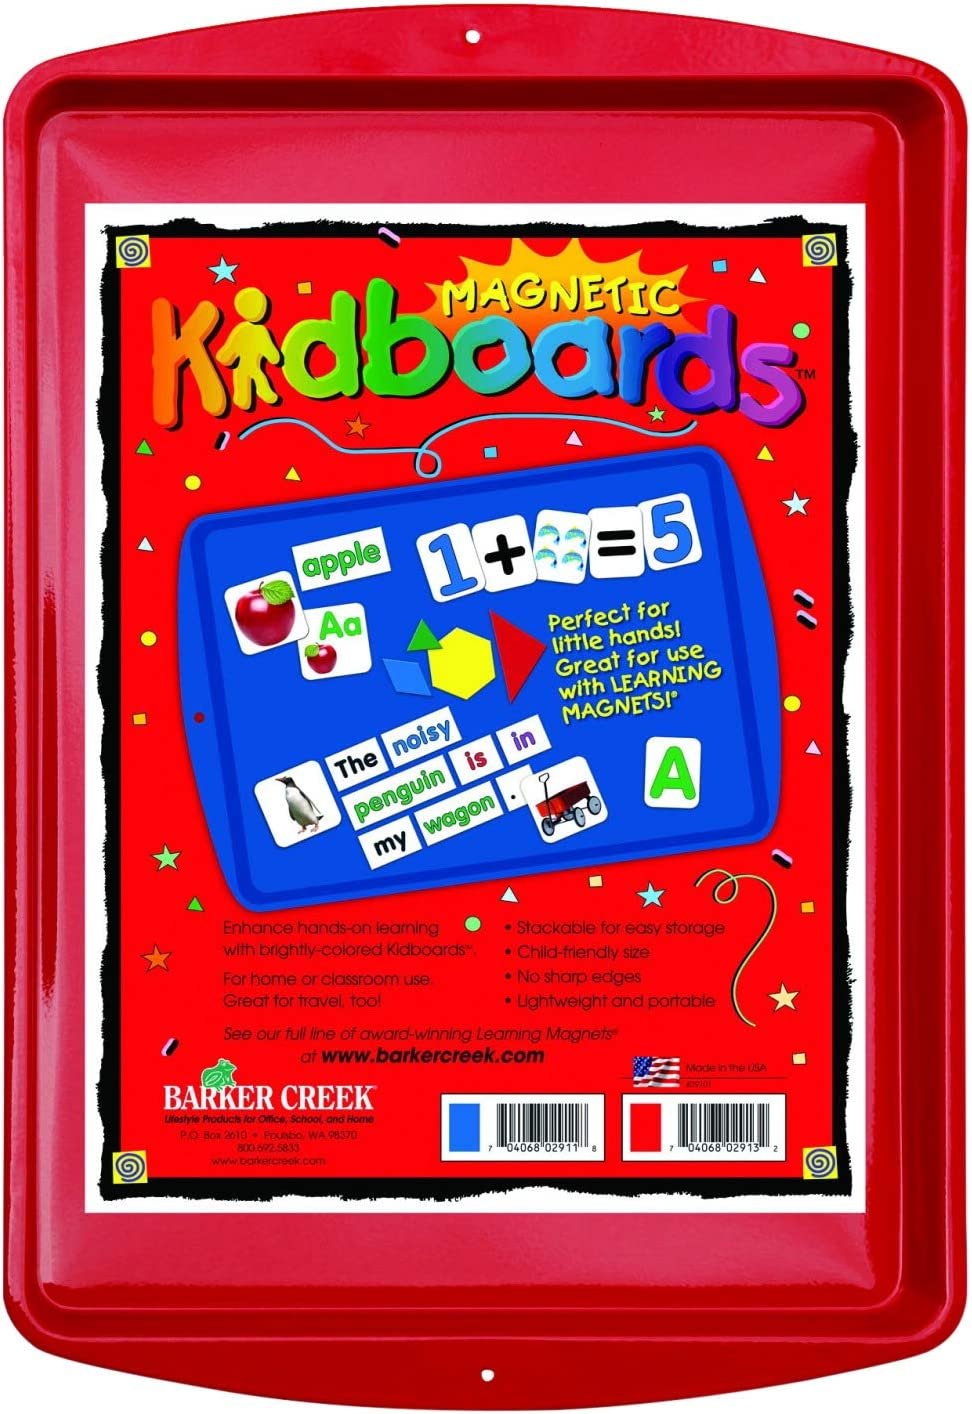 quality assurance Barker Creek Learning Magnets Kidboard This Cash special price Magnetic-Recept Red